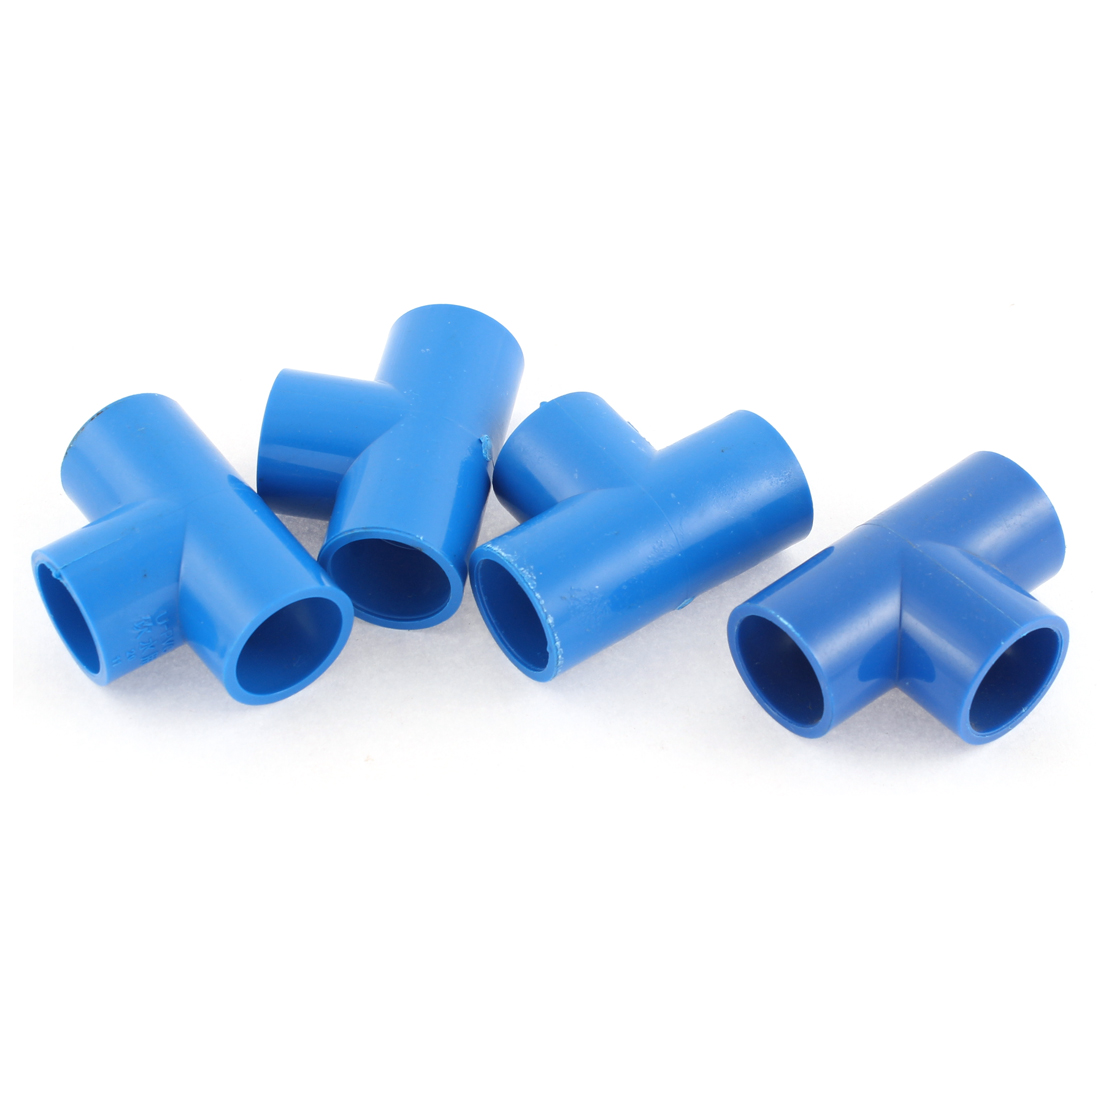 4PCS 20mm to 20mm T-shaped 3 Way Drinking Water Tube Pipe Fitting Coupler Connector Adapter Kitchen Bathroom